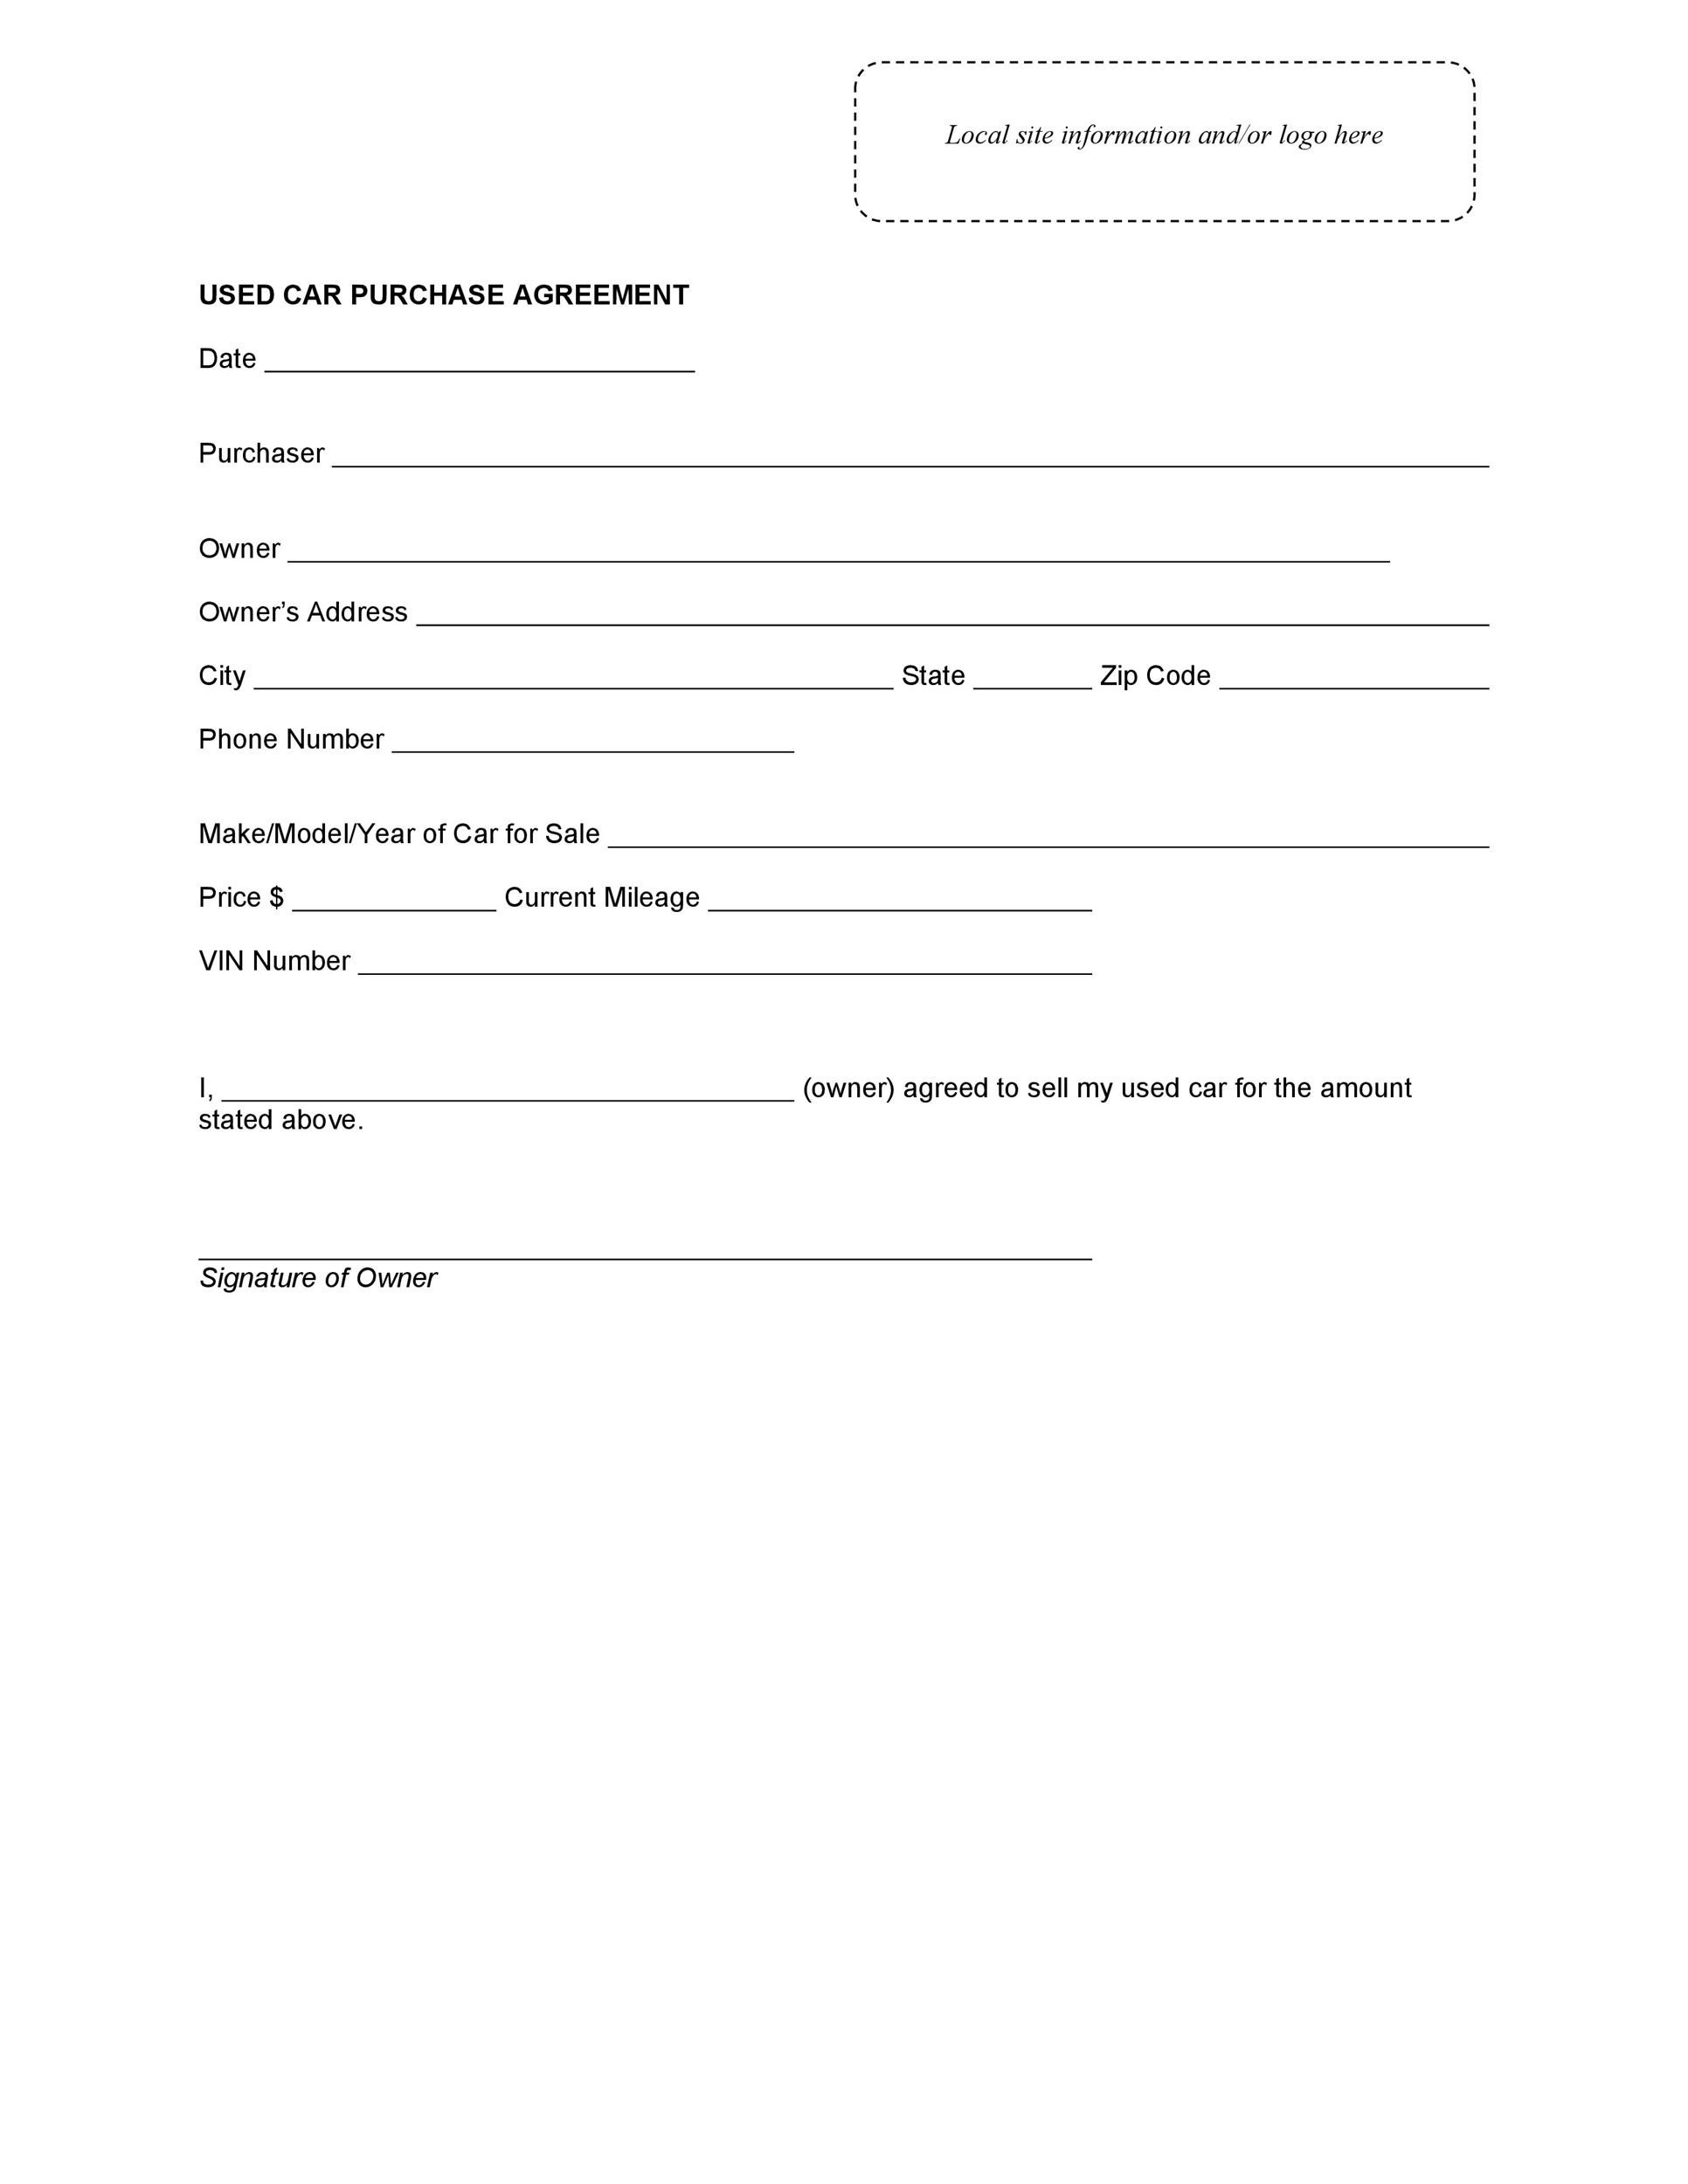 42 Printable Vehicle Purchase Agreement Templates Template Lab – Purchase Agreement Sample